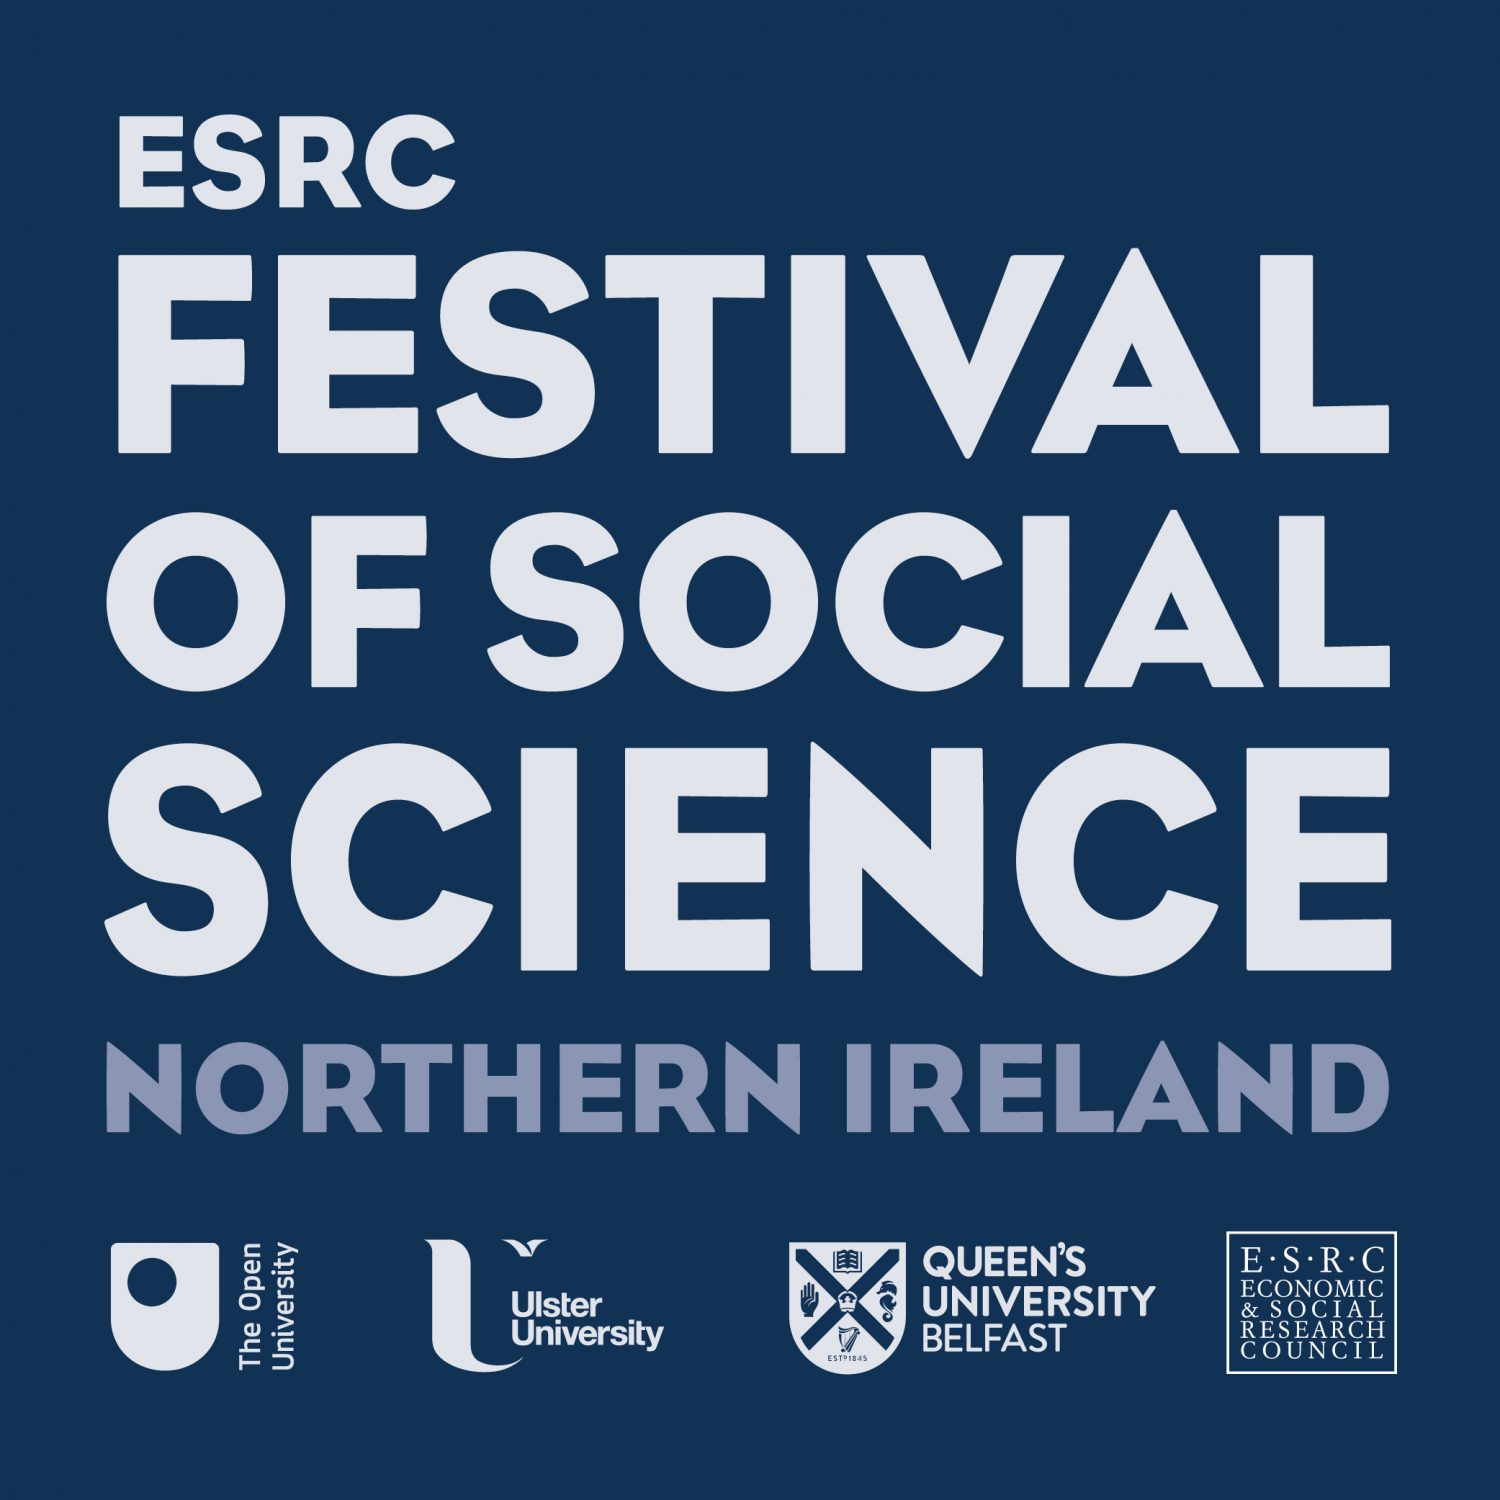 ESRC Festival of Social Science Comes Again to Northern Ireland